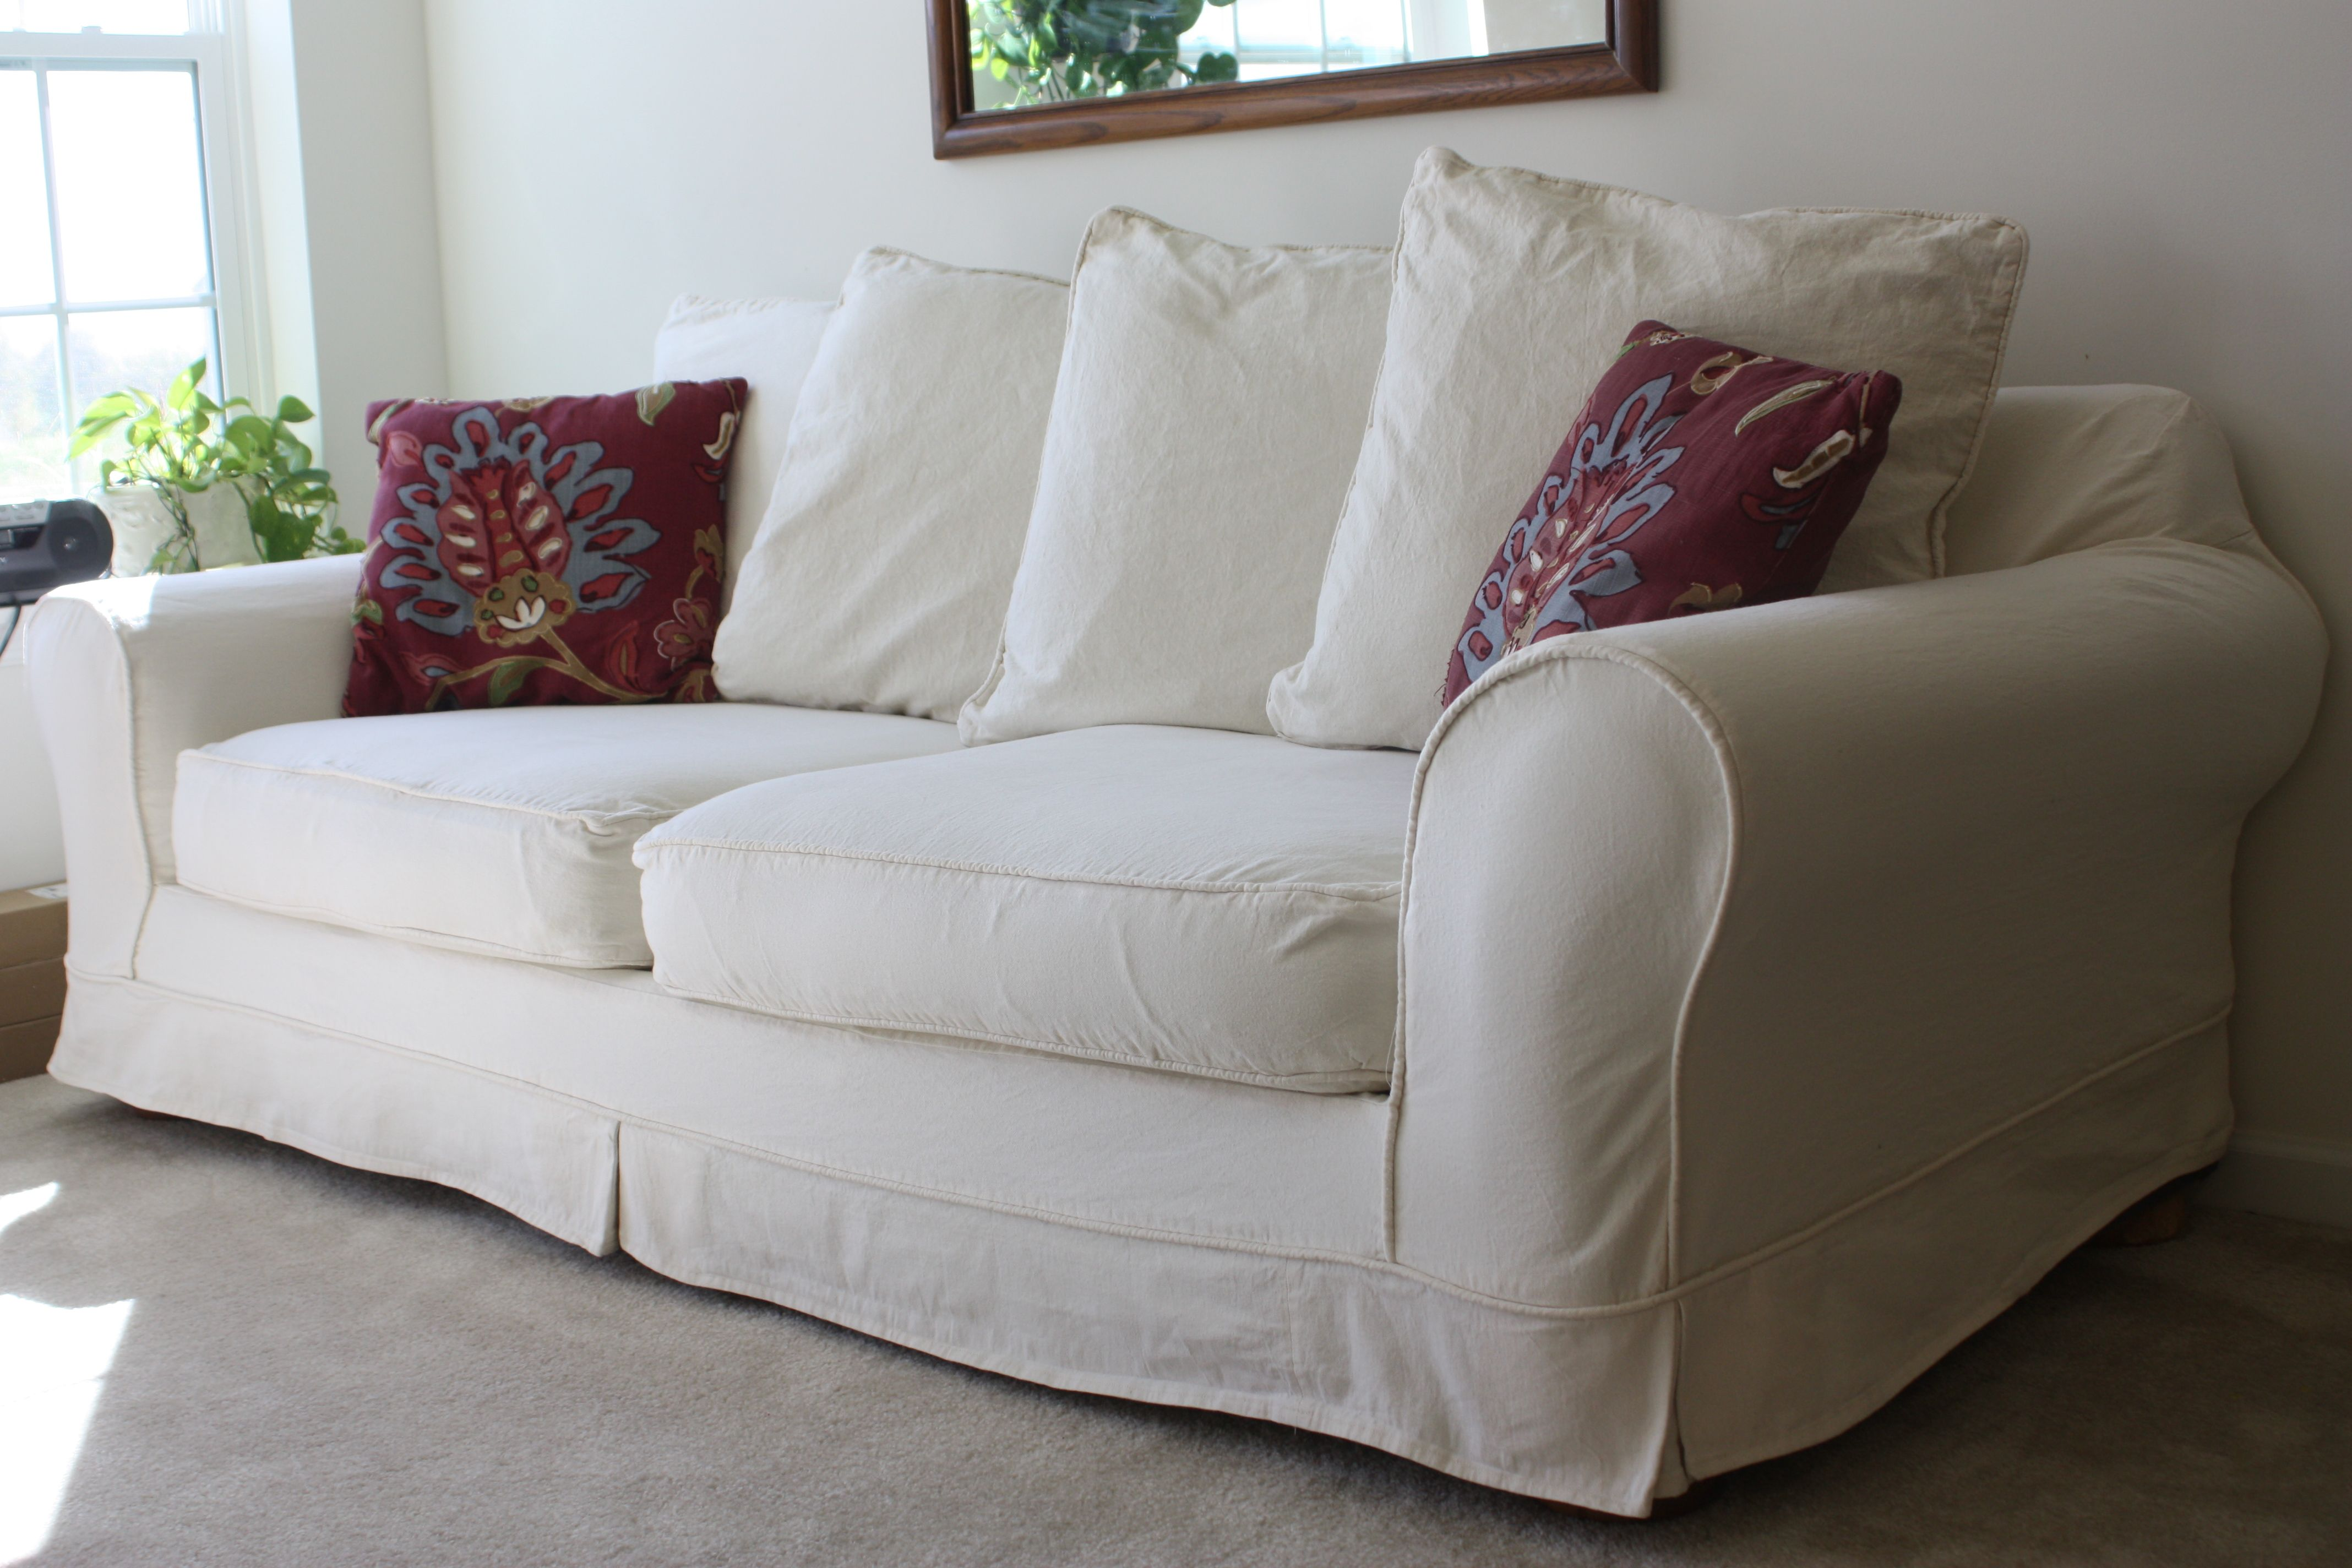 Whitered sofa for nice living room homesfeed pretty pillows on sofas